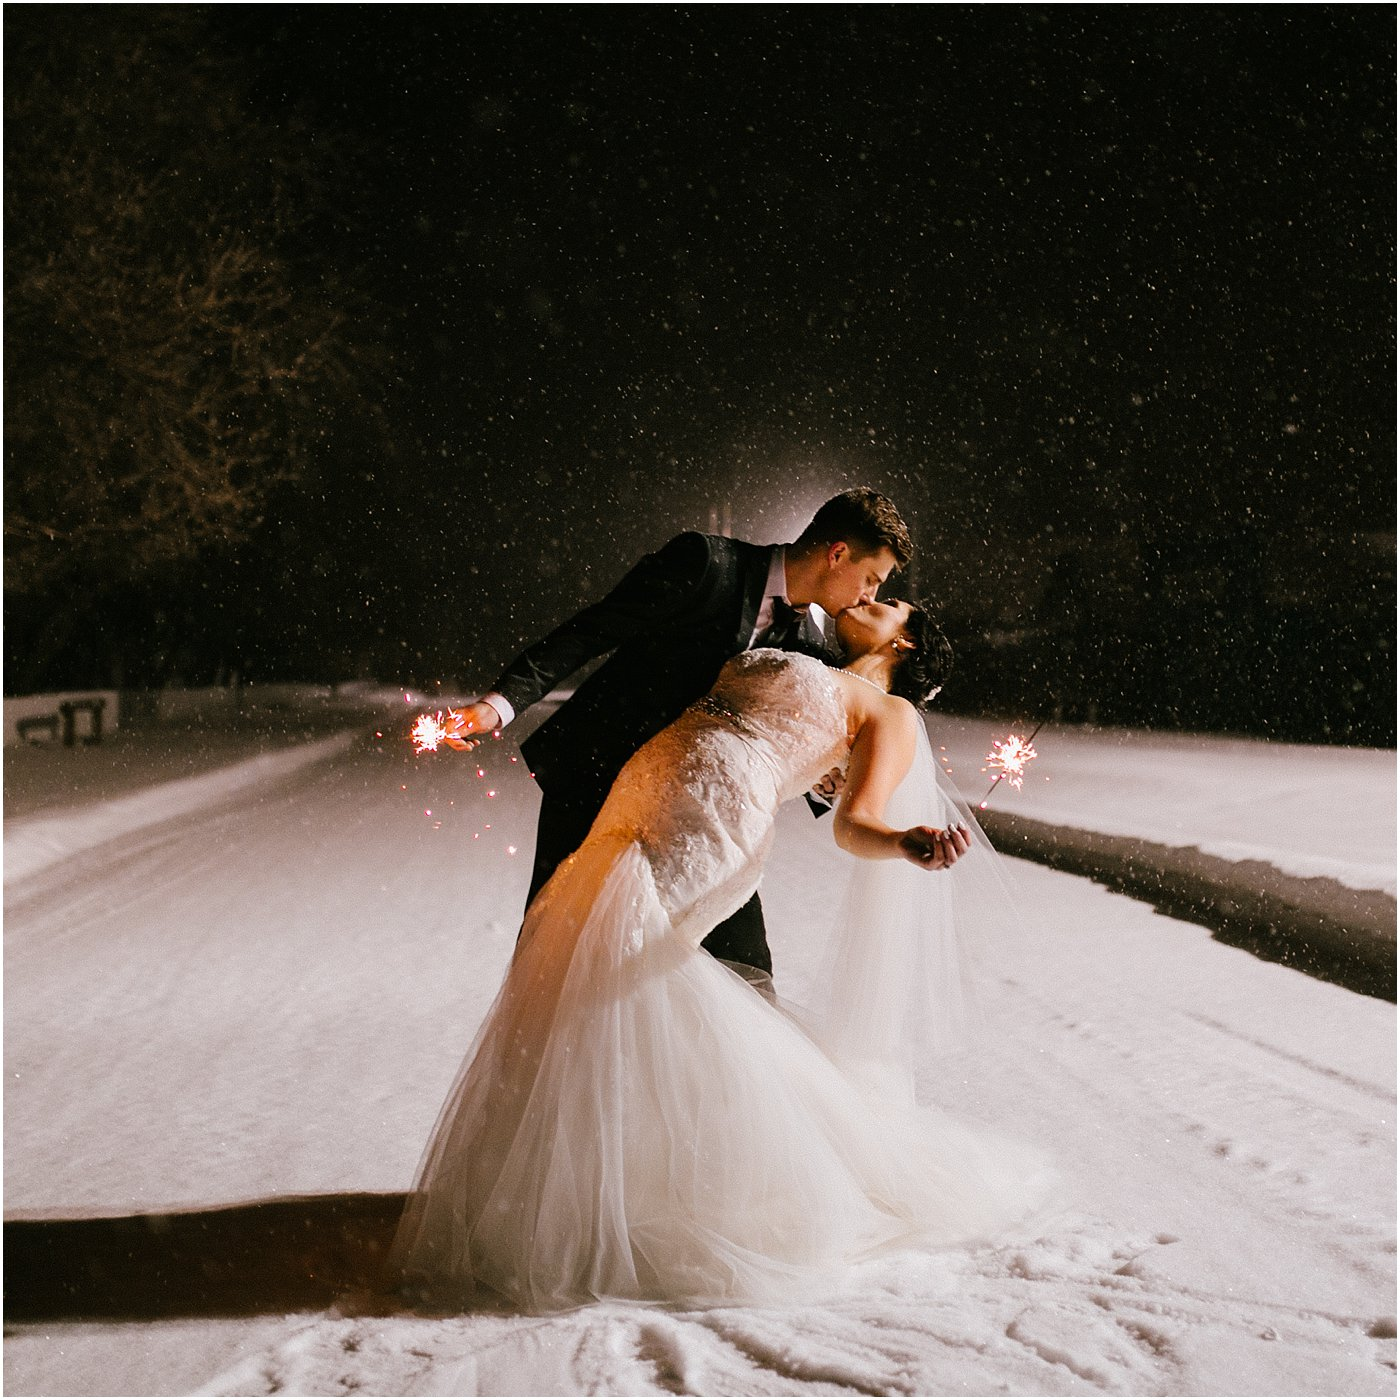 Dez And Ryan's Winter Wedding Previews